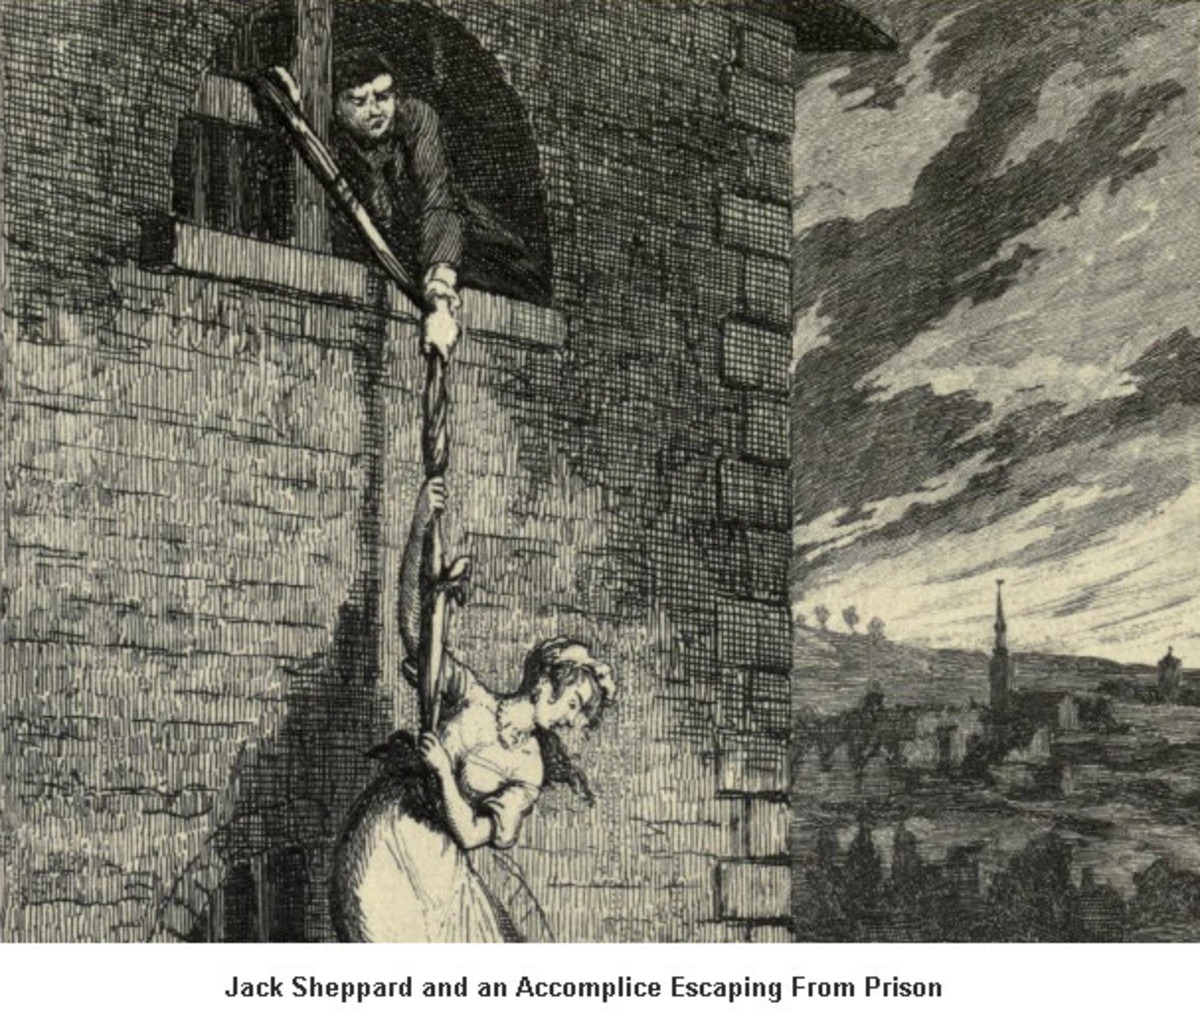 An Illustration from Jack Sheppard